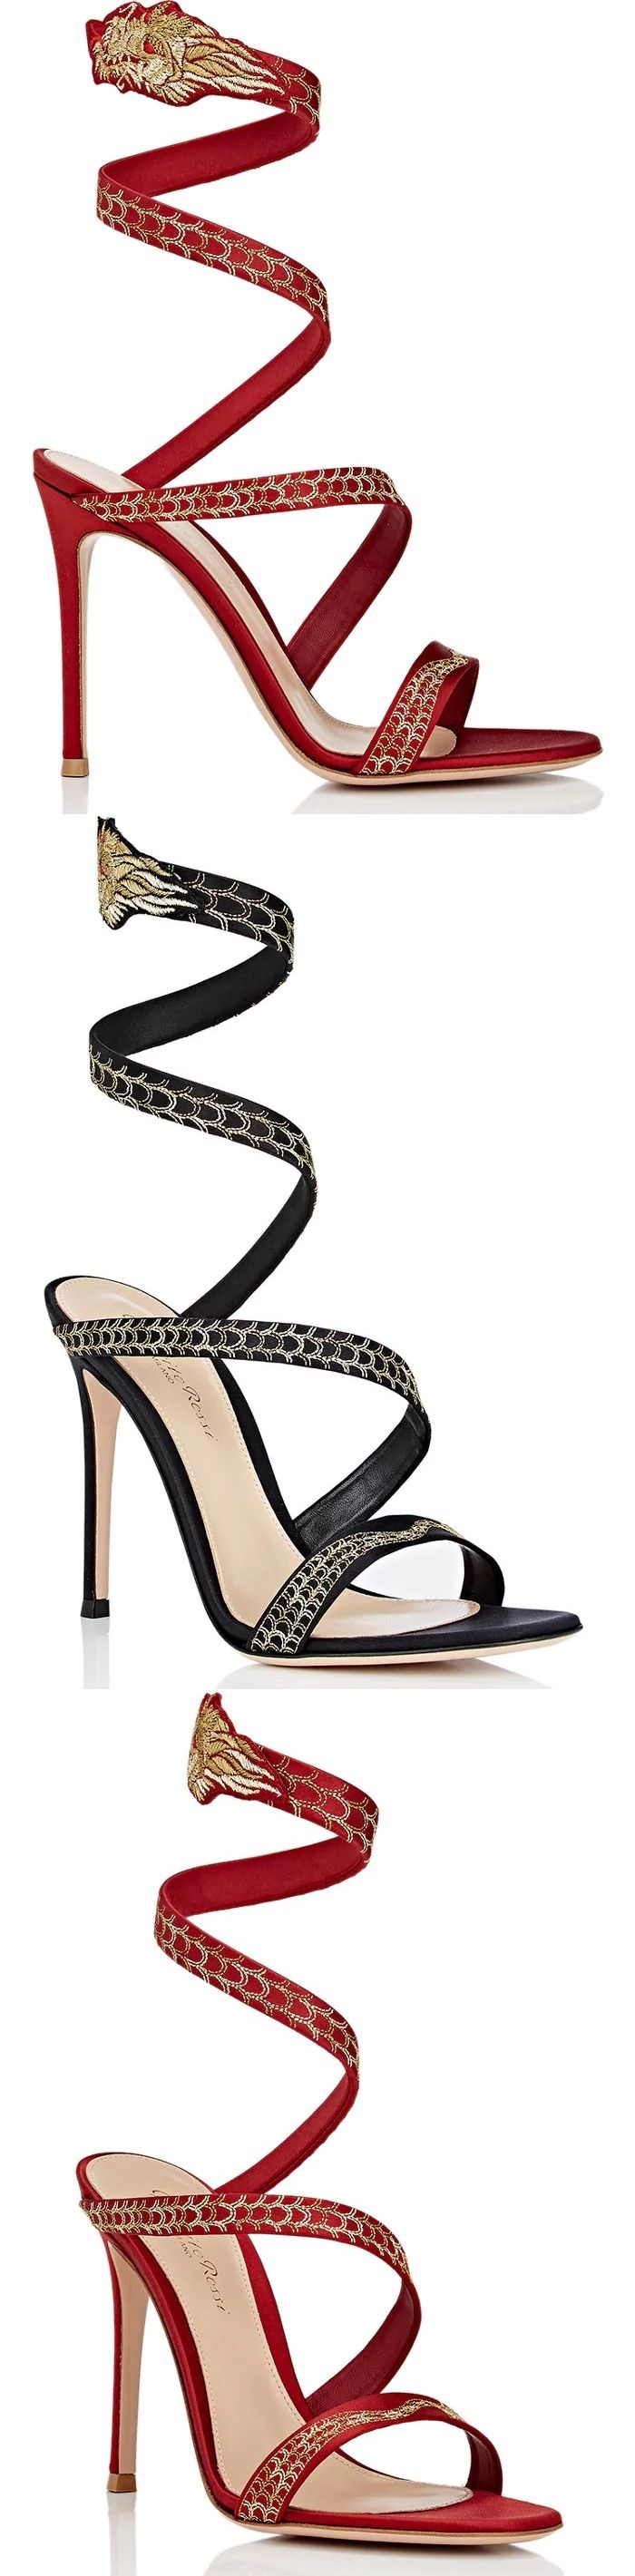 Gianvito Rossi's Dragon sandals are crafted of lustrous satin and styled with a wraparound spiral ankle strap. Made in Italy, these elegant shoes are artfully embroidered with a gold and red dragon.